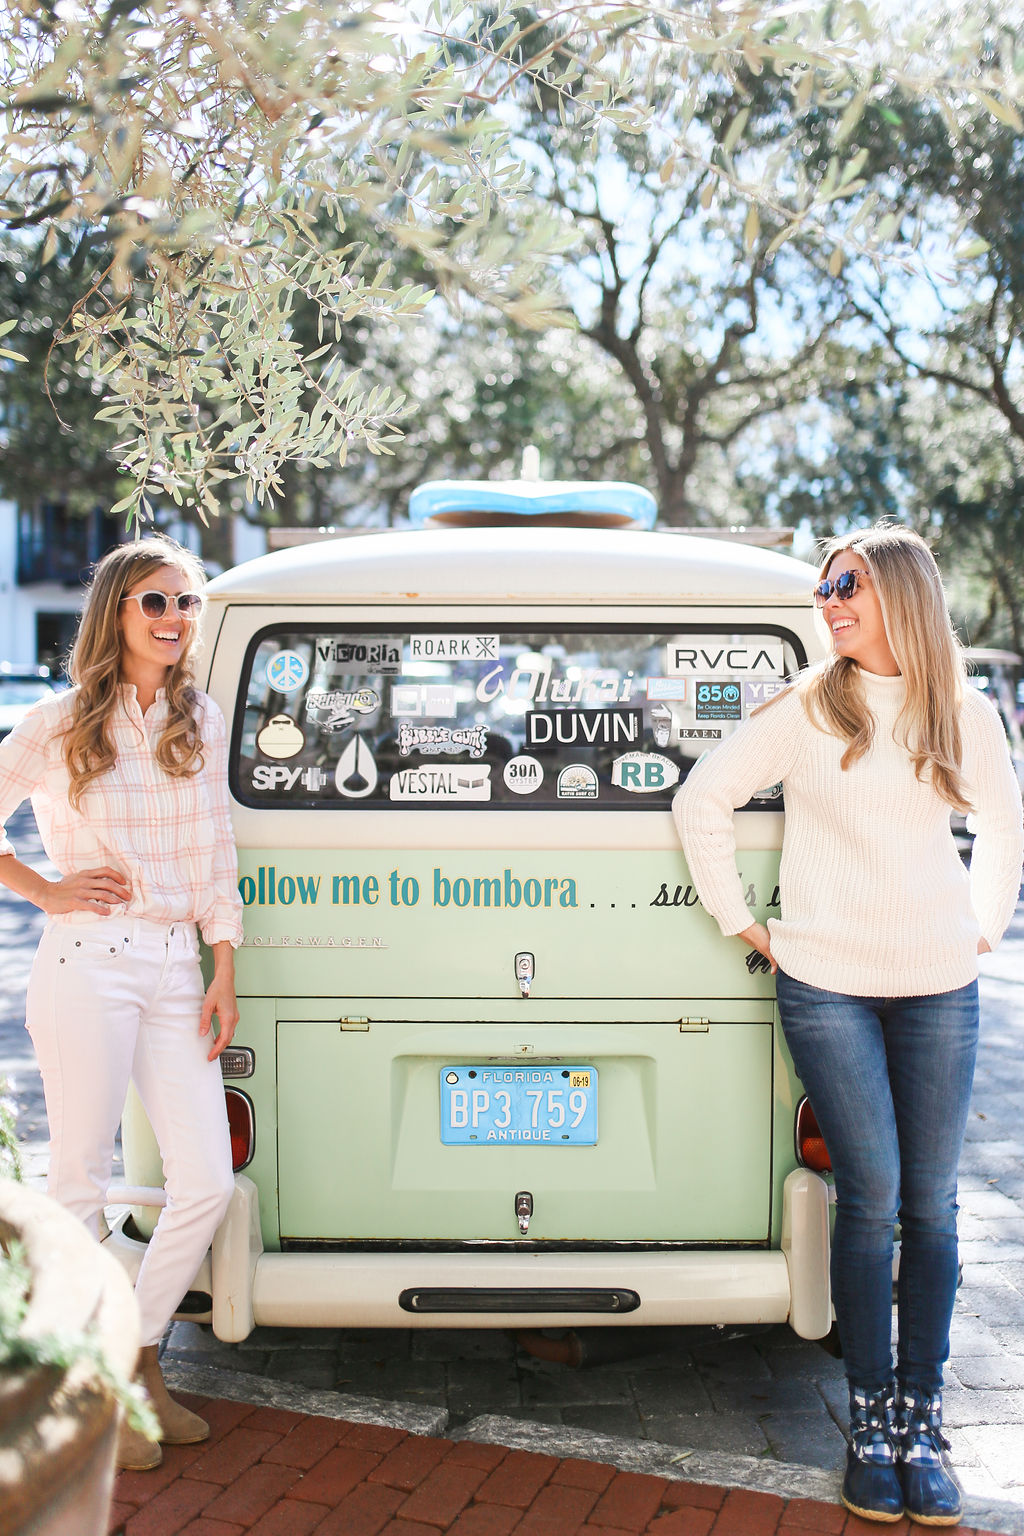 Travel: Palm Beach Lately's Guide to Rosemary Beach